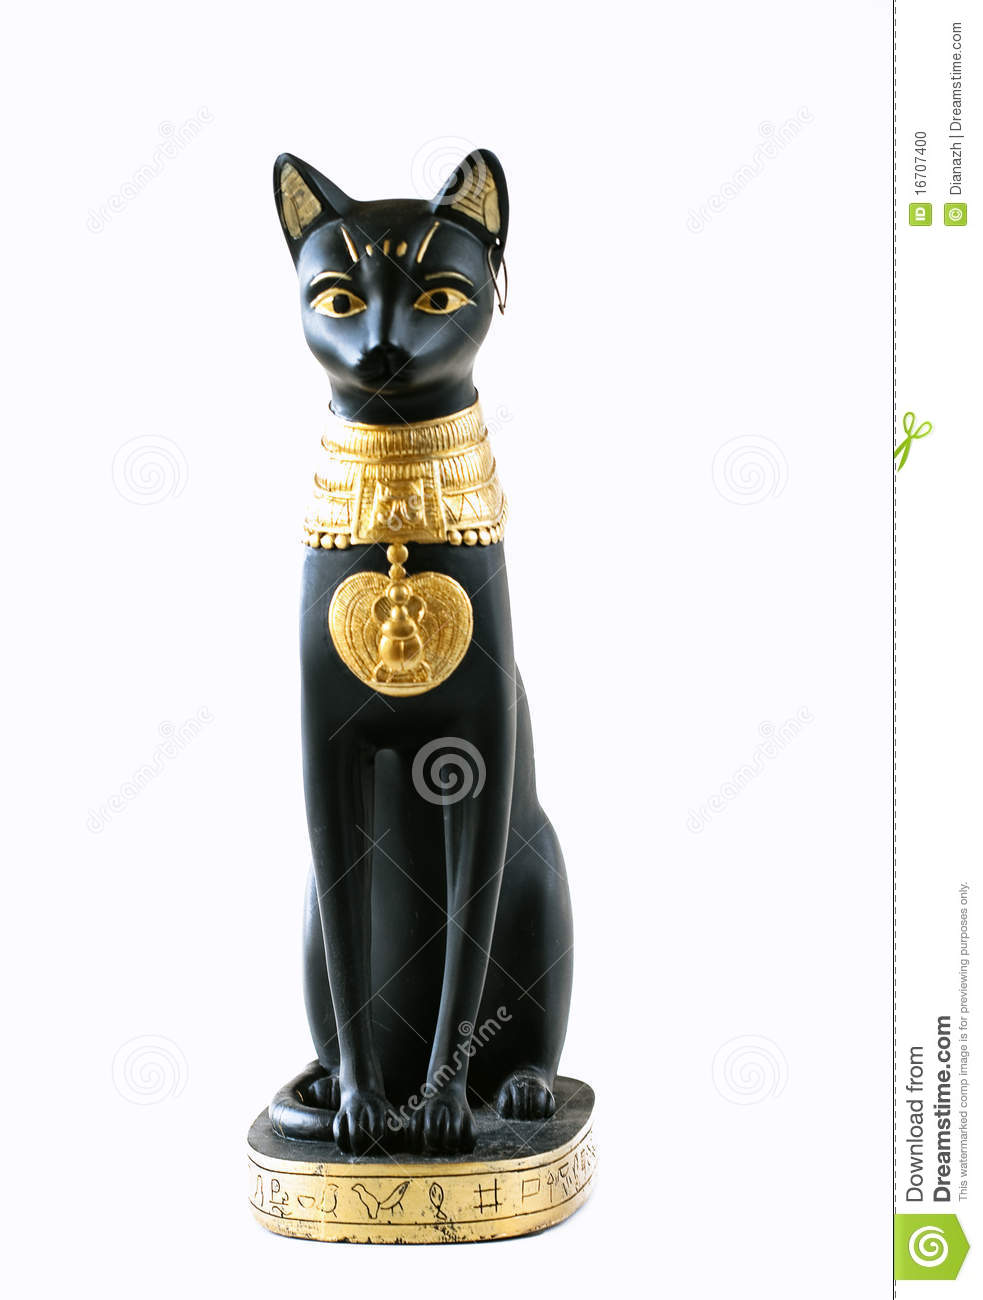 Egyptian Cat Stock Photo - Image: 16707400